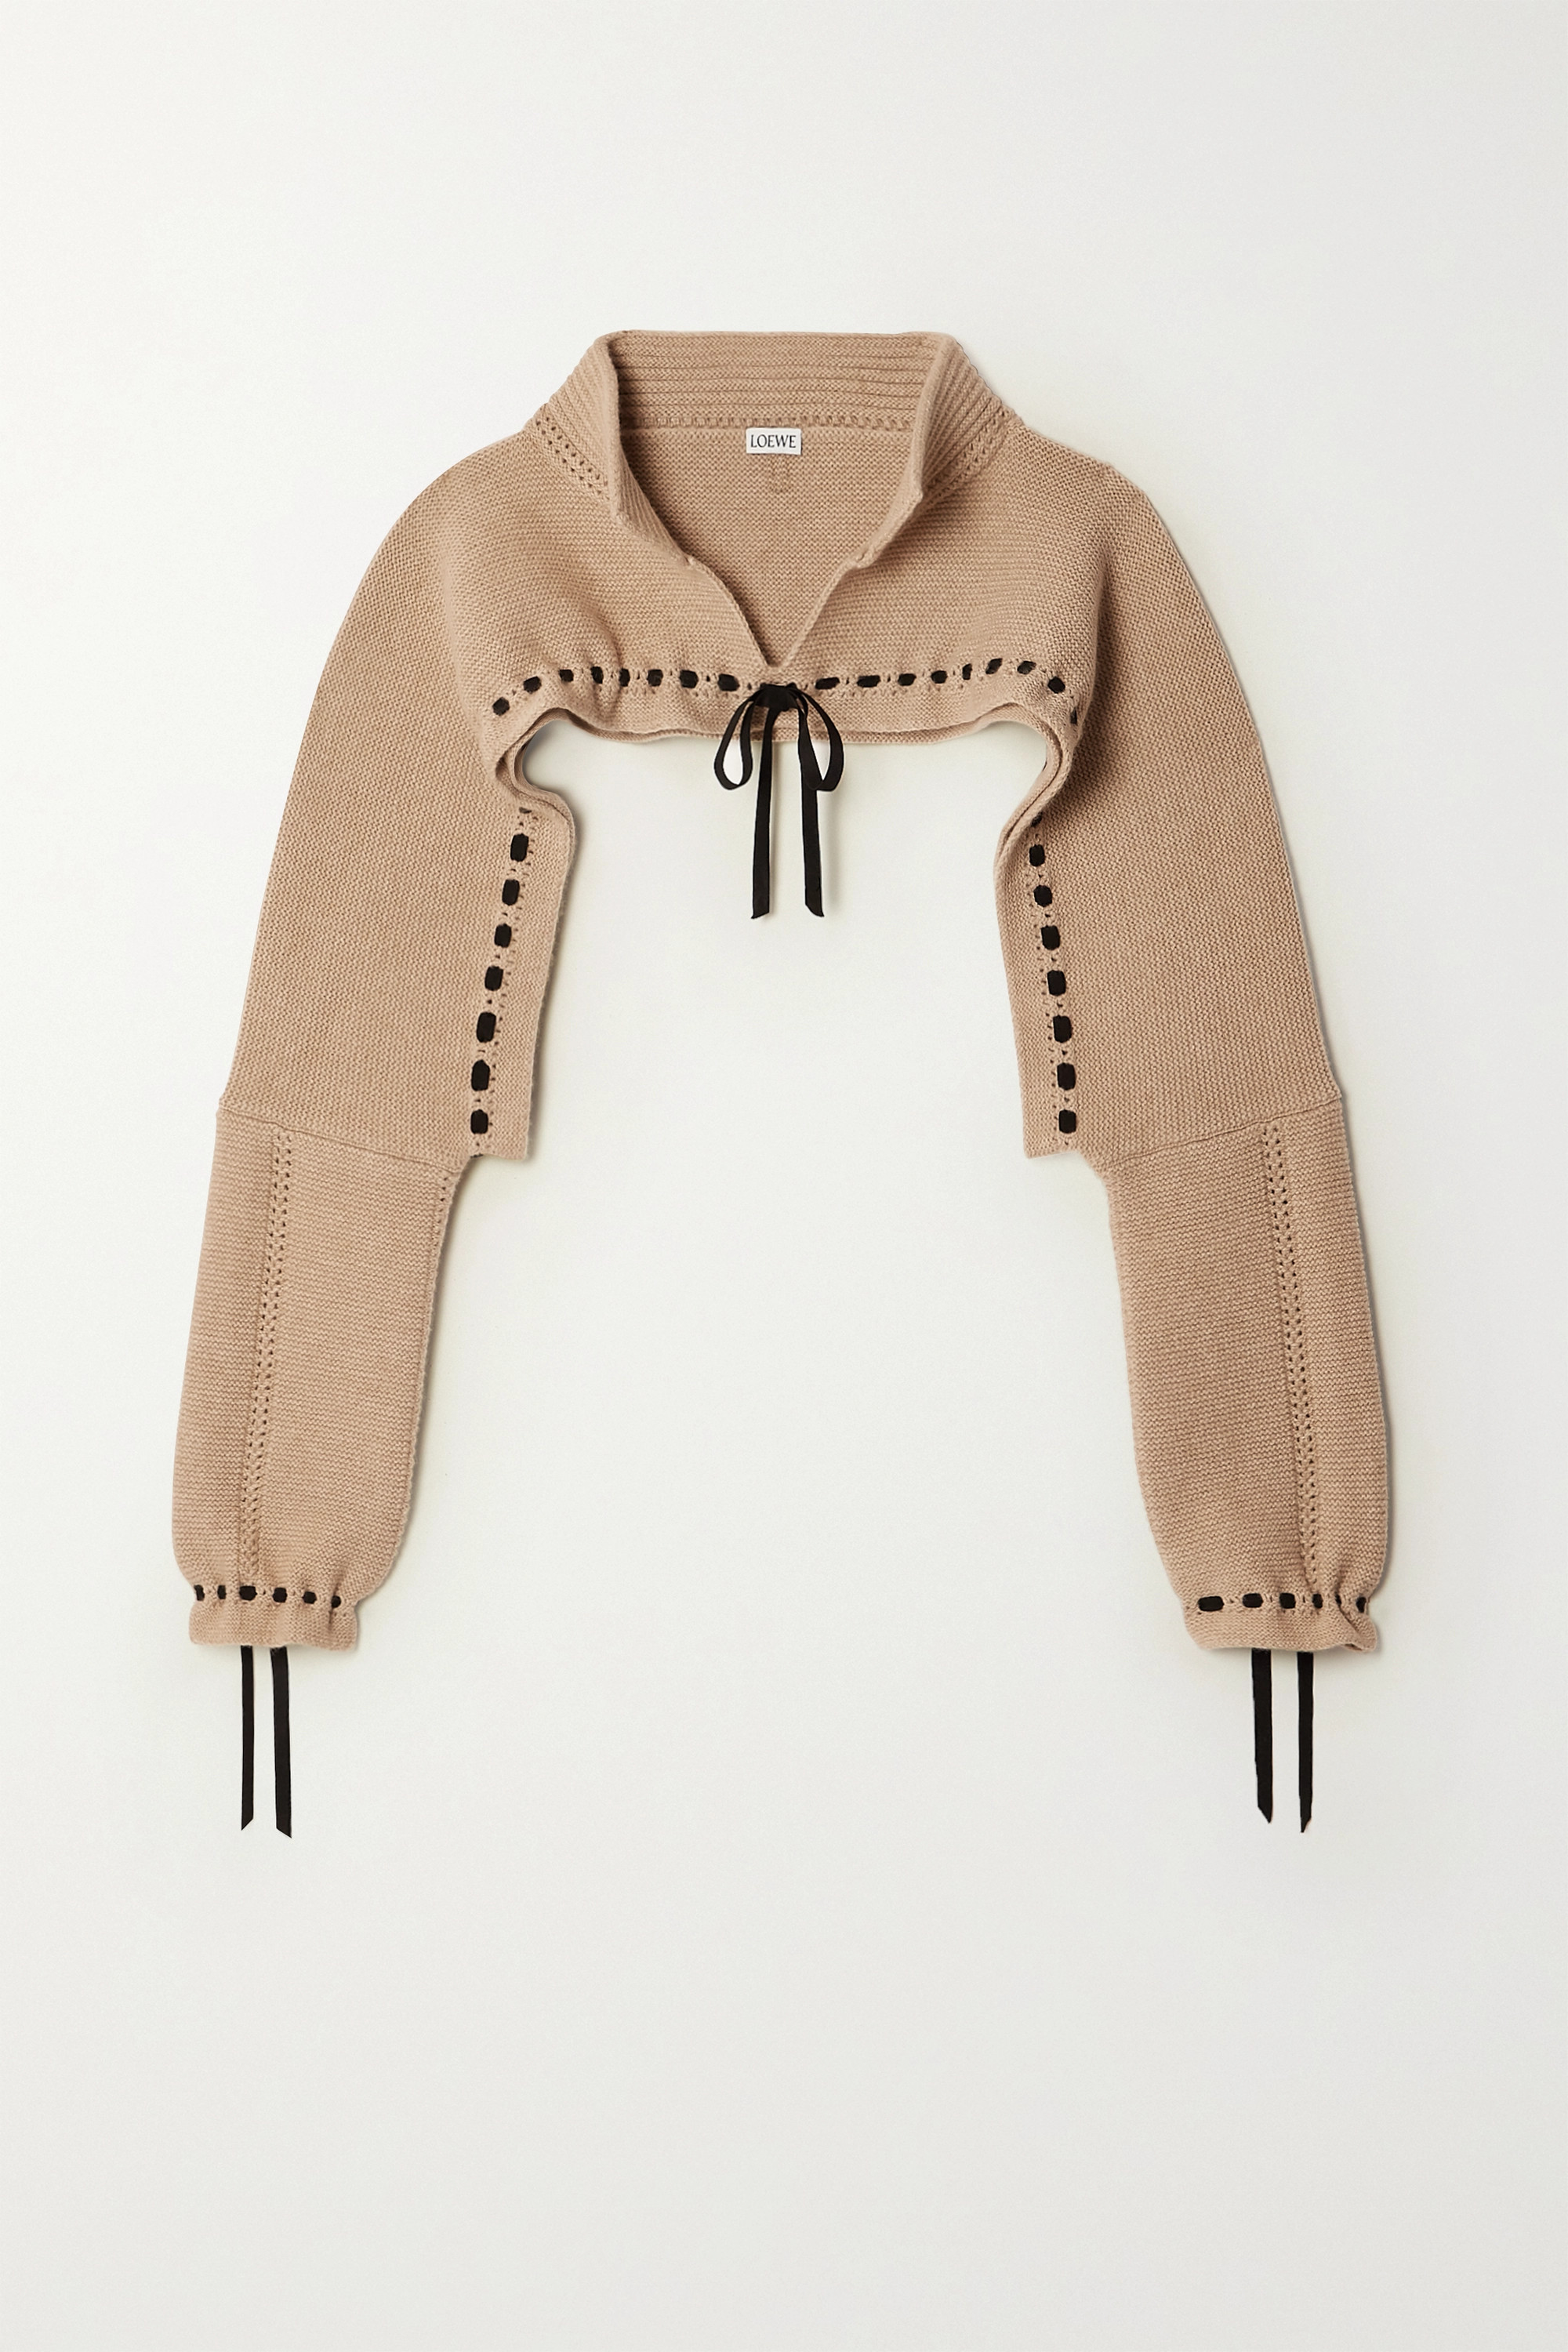 Loewe Cropped tie-detailed wool and cashmere-blend sweater